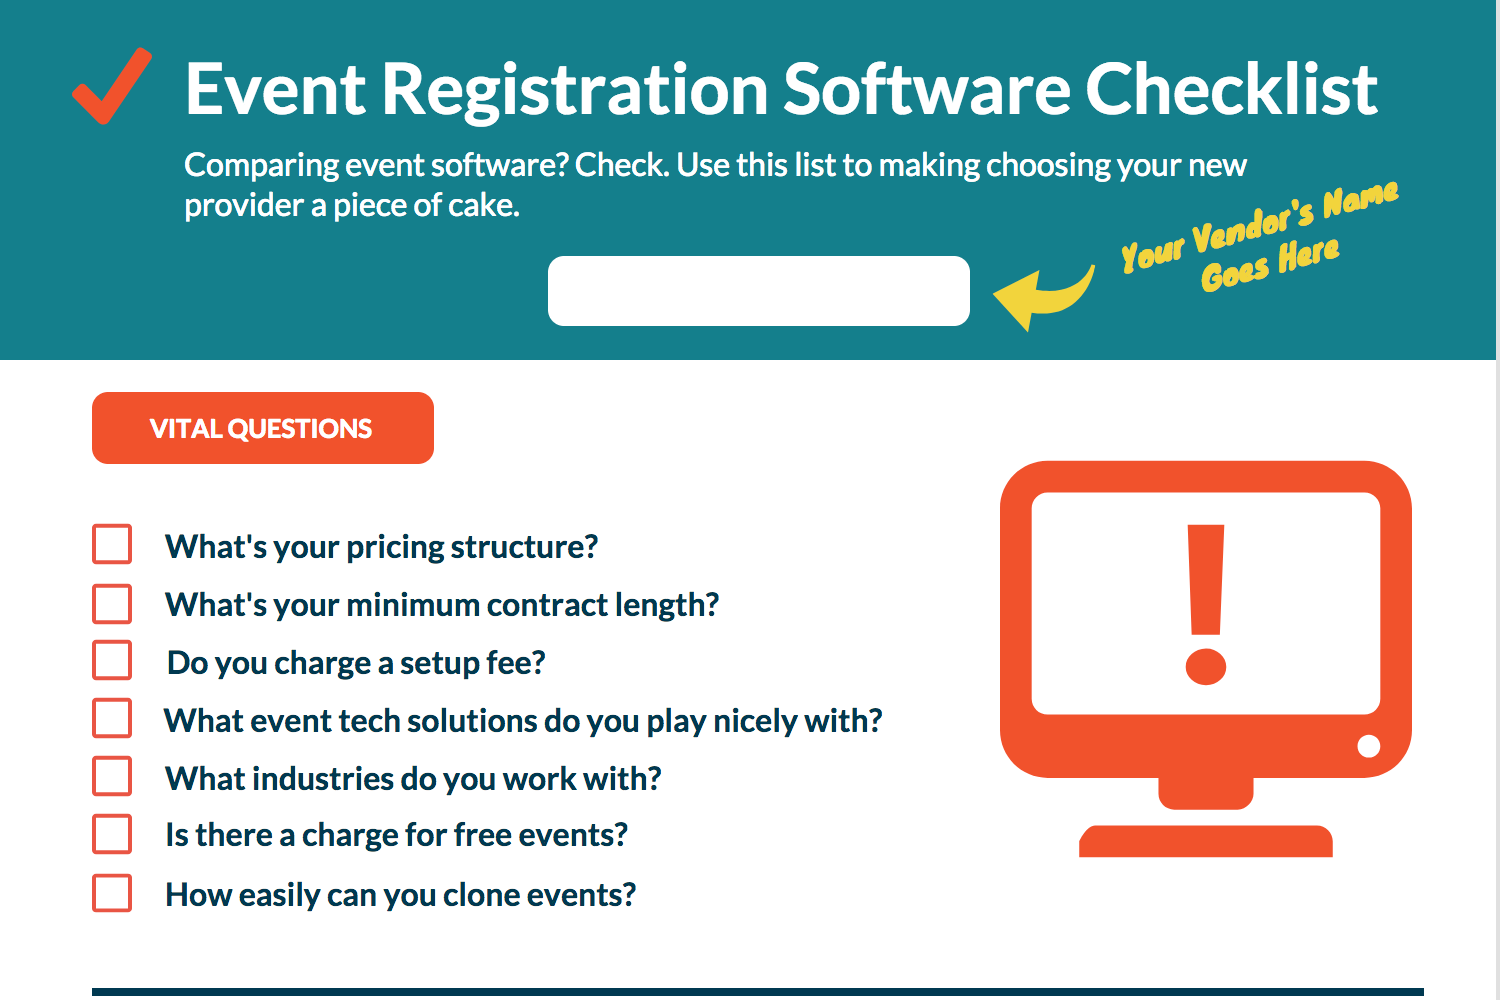 Event Registration Software Checklist